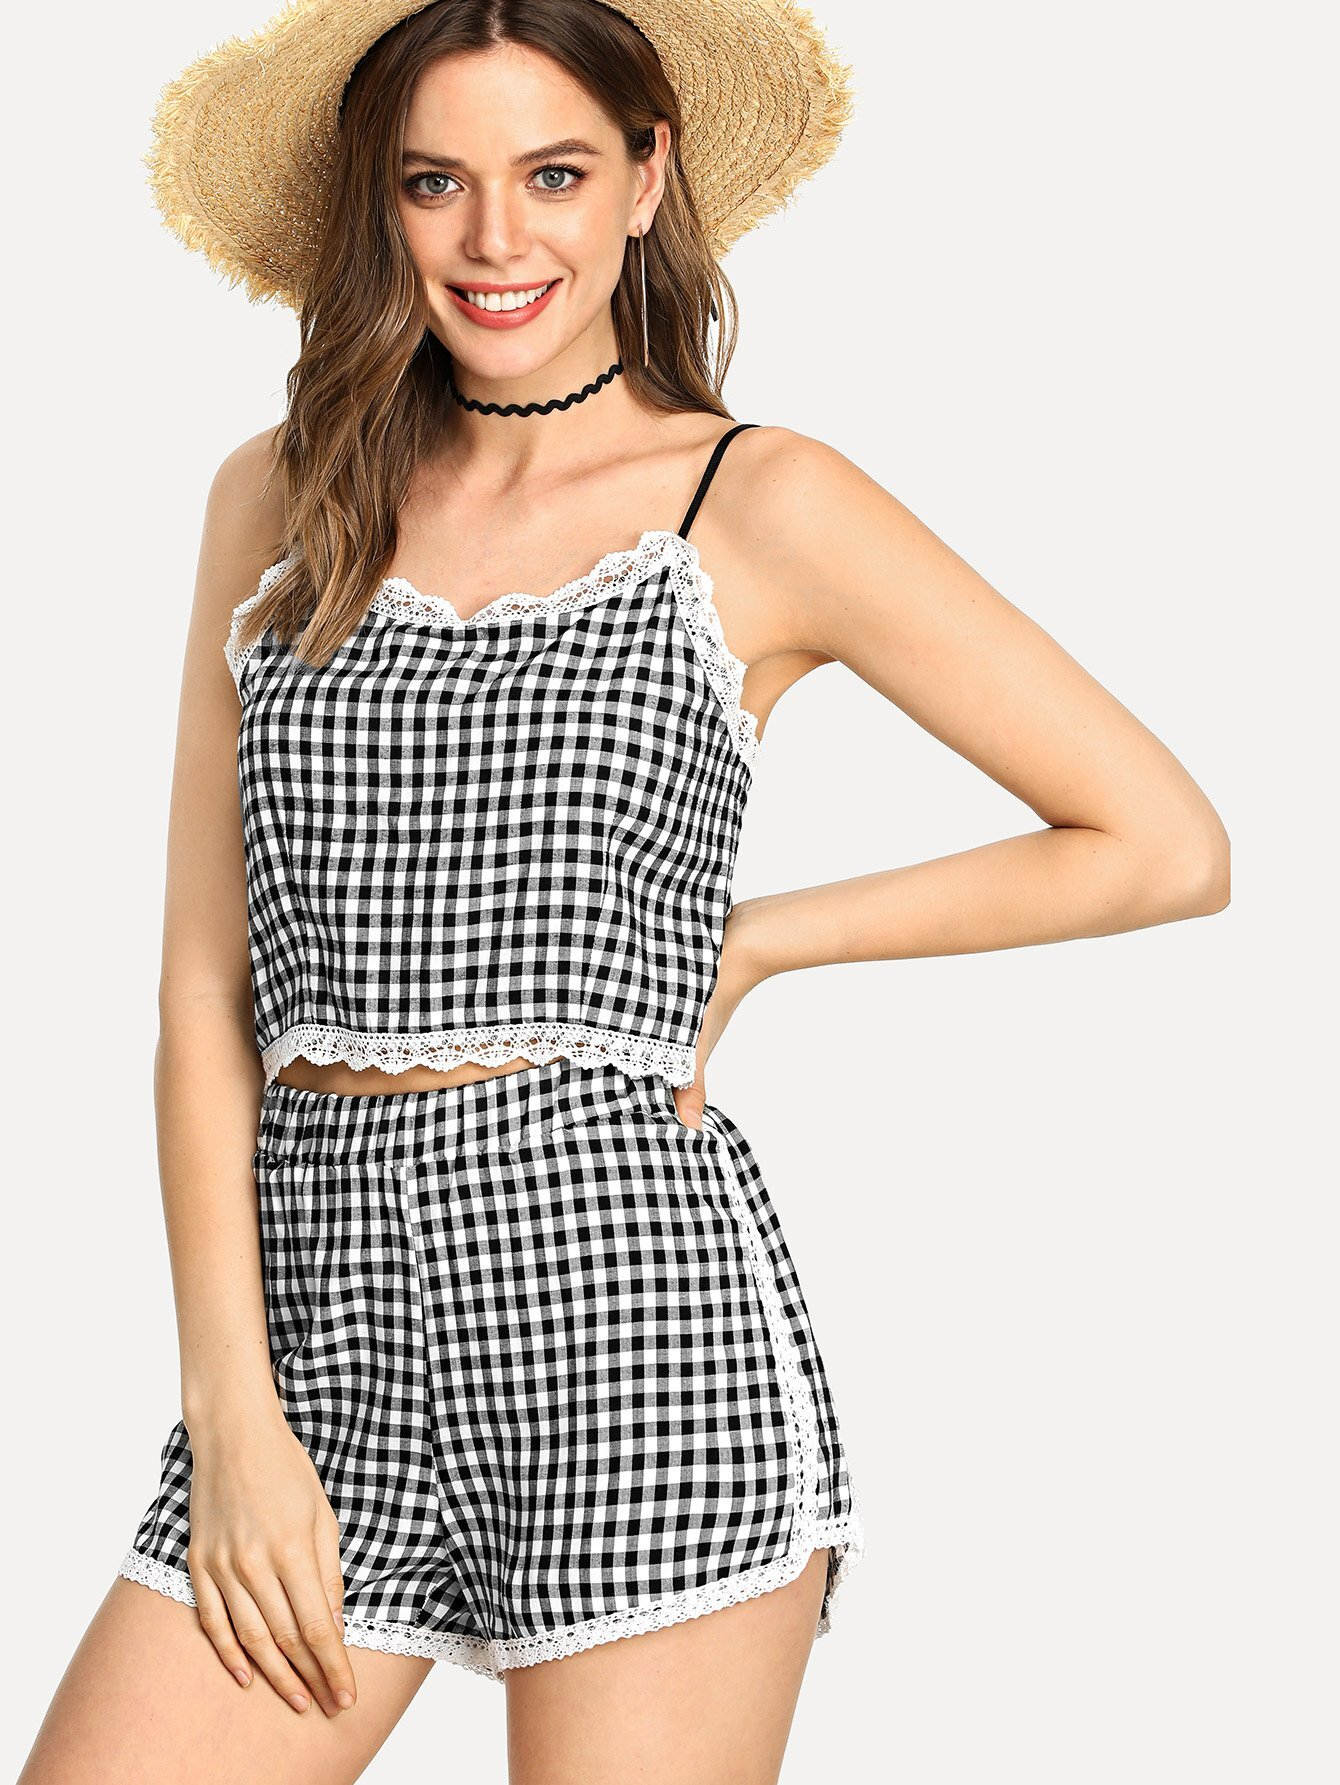 Lace Trim Checked Cami With Shorts lace trim tee with shorts